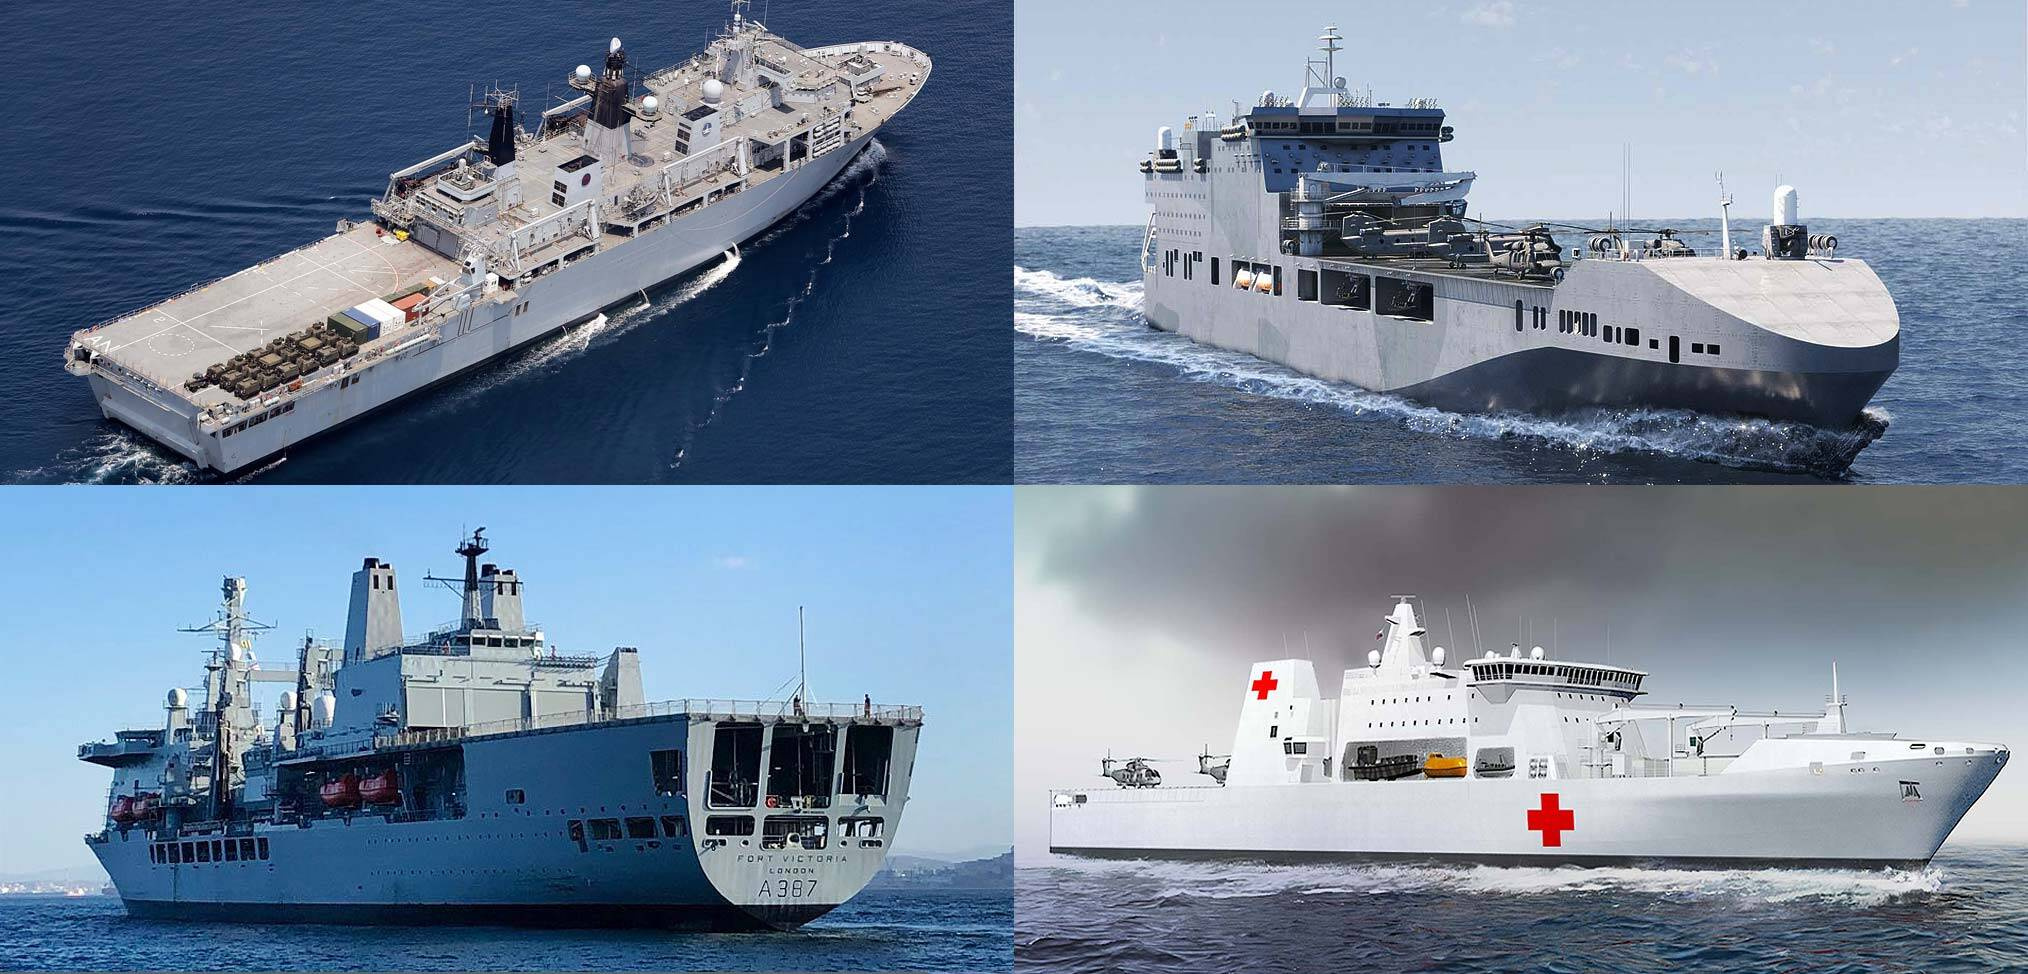 Multi-Role Support Ships for the Royal Navy – one size fits all?